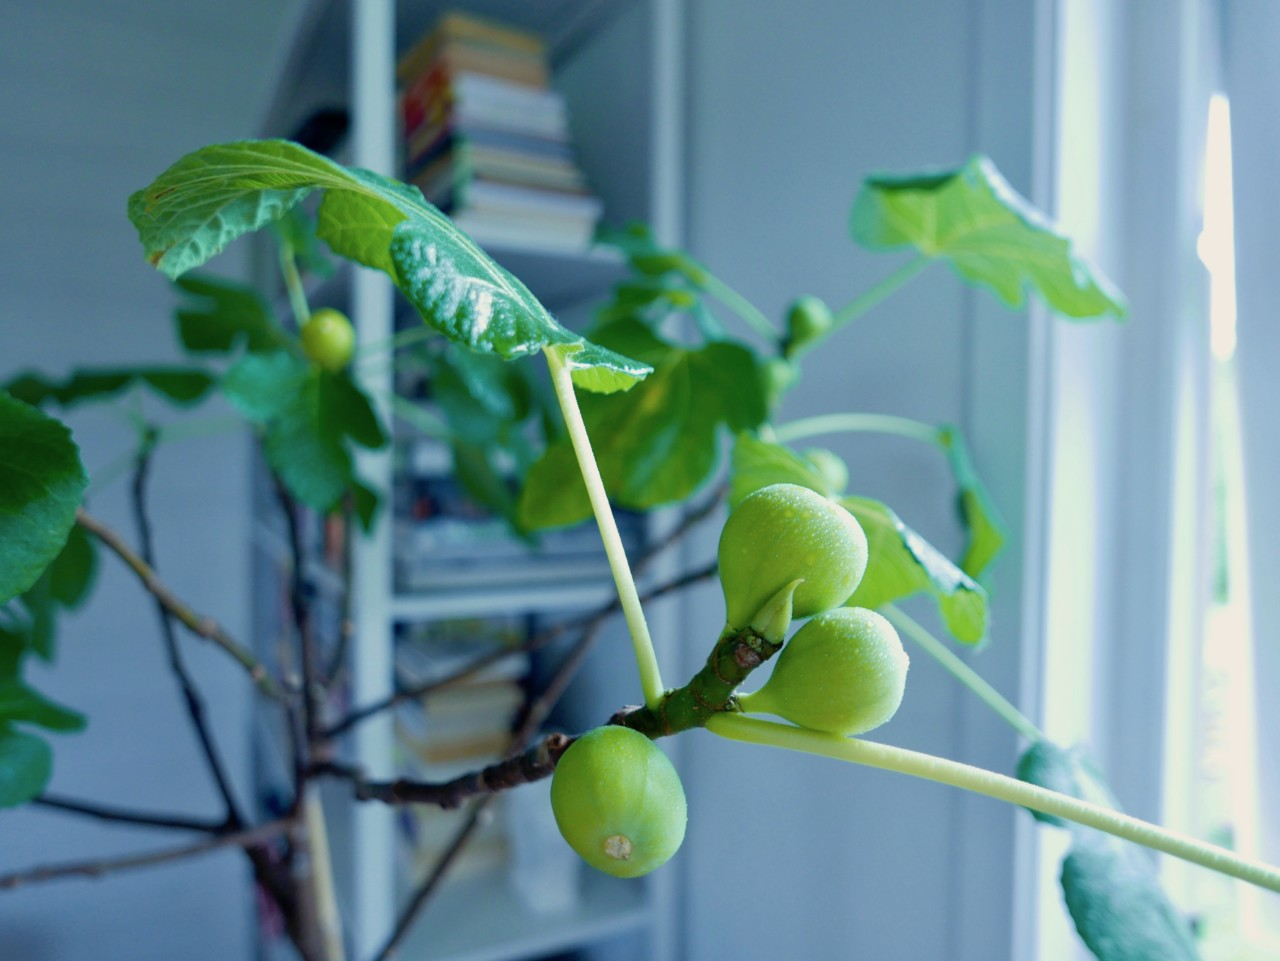 fikentre-fig-tree-shower-plant-lover-green-house